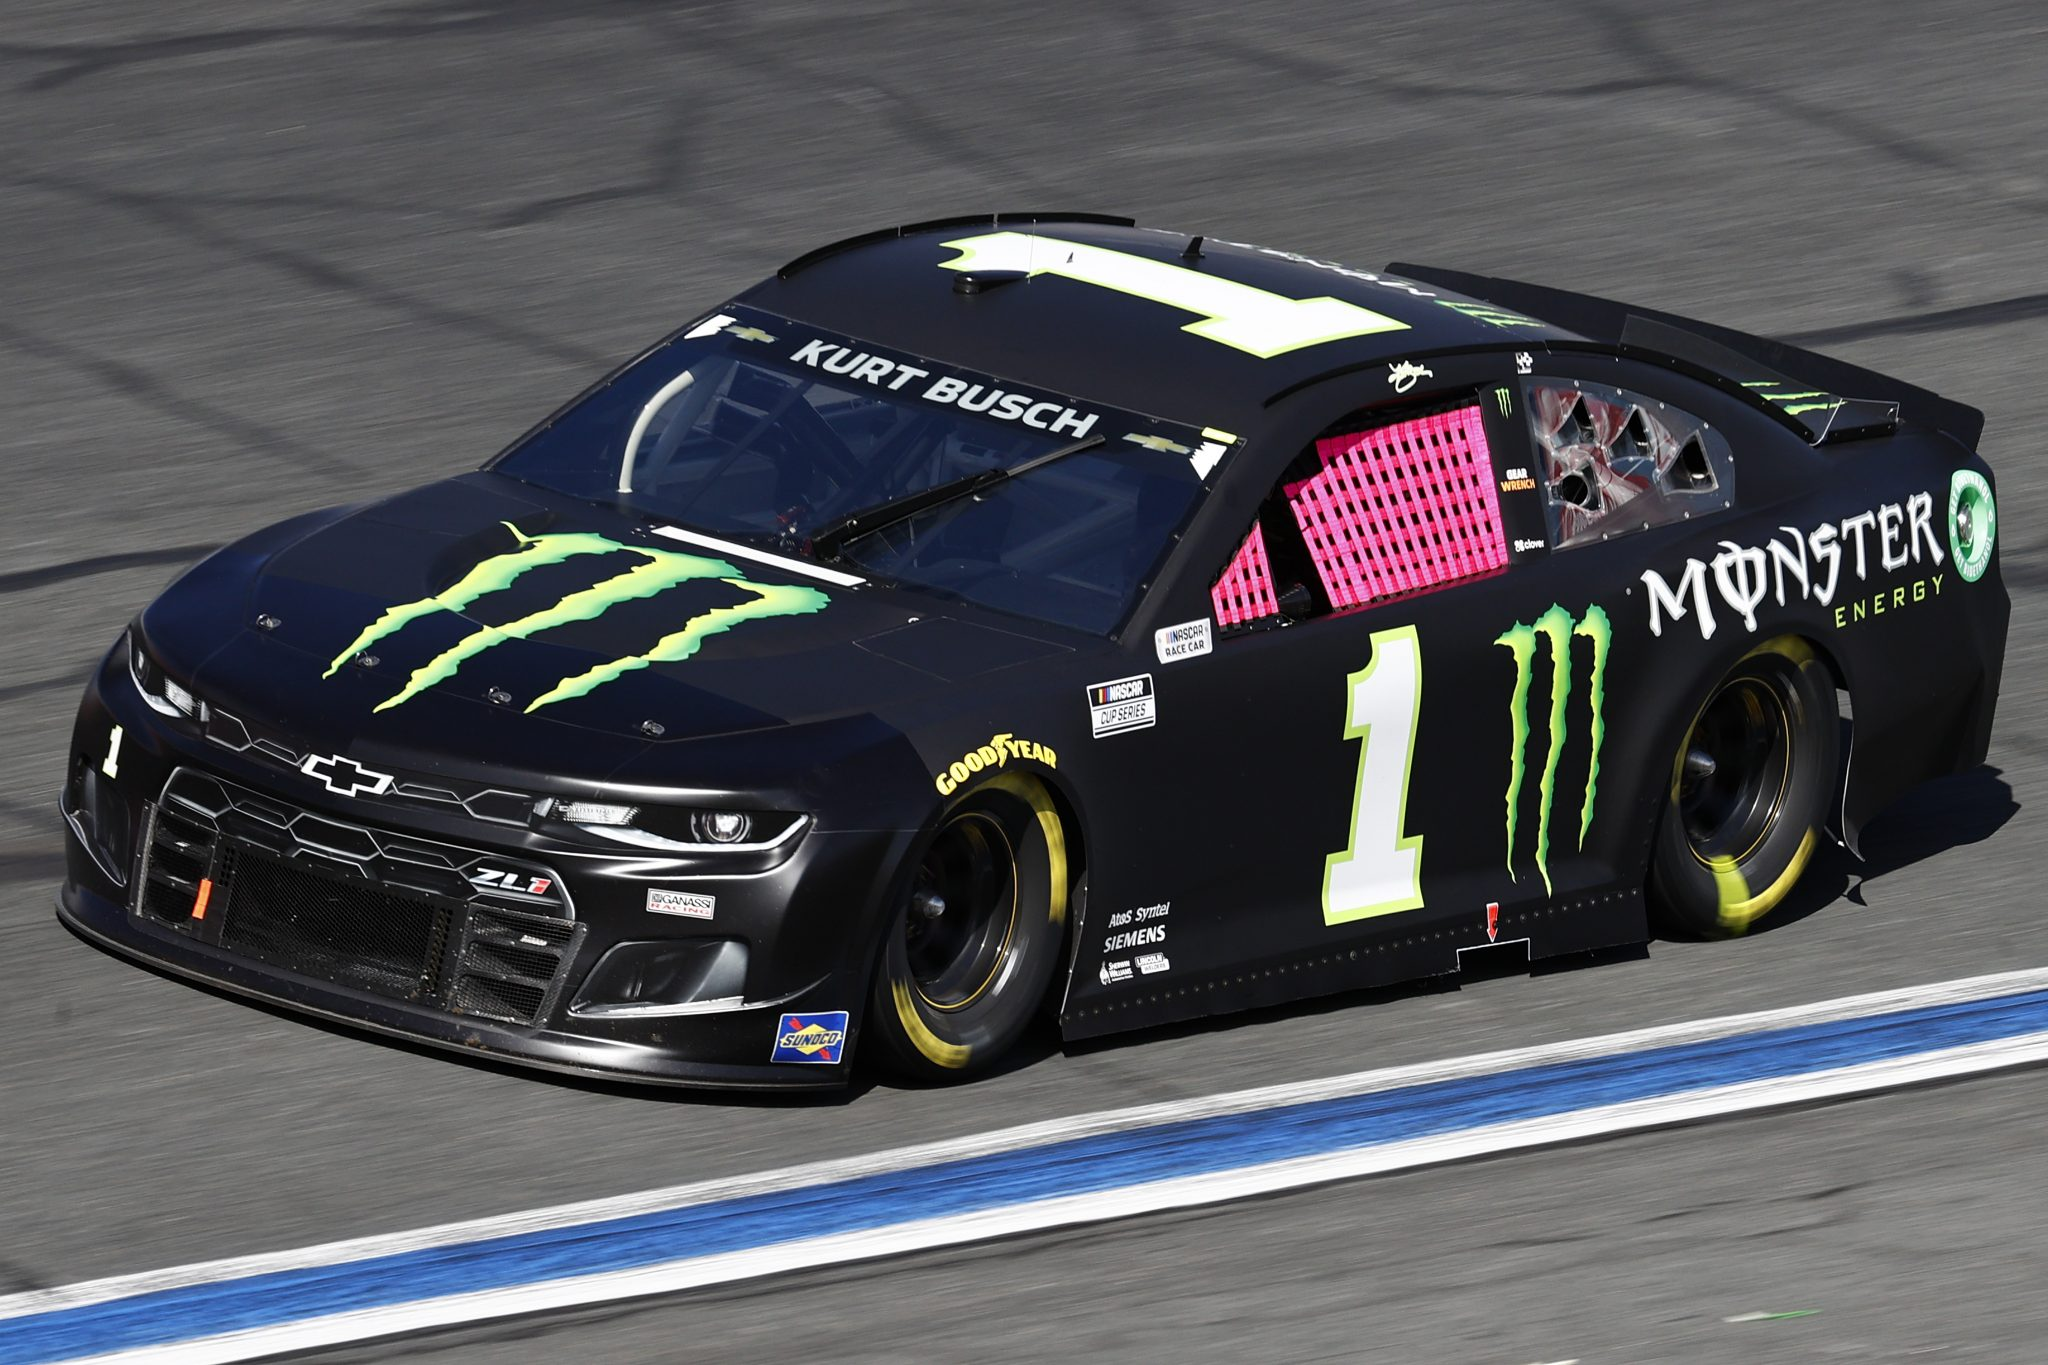 CONCORD, NORTH CAROLINA - OCTOBER 10: Kurt Busch, driver of the #1 Monster Energy Chevrolet, drives during the NASCAR Cup Series Bank of America ROVAL 400 at Charlotte Motor Speedway on October 10, 2021 in Concord, North Carolina. (Photo by Jared C. Tilton/Getty Images) | Getty Images